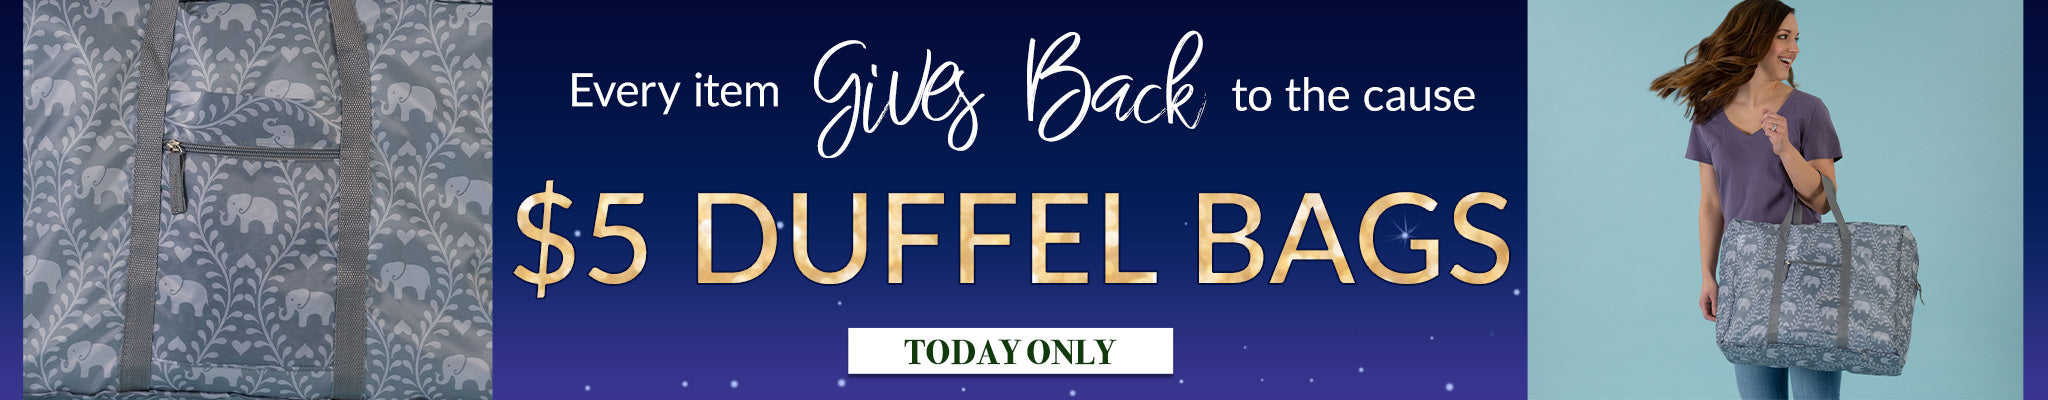 Every Item Gives Back to the Cause | $5 Duffel Bags | Today Only